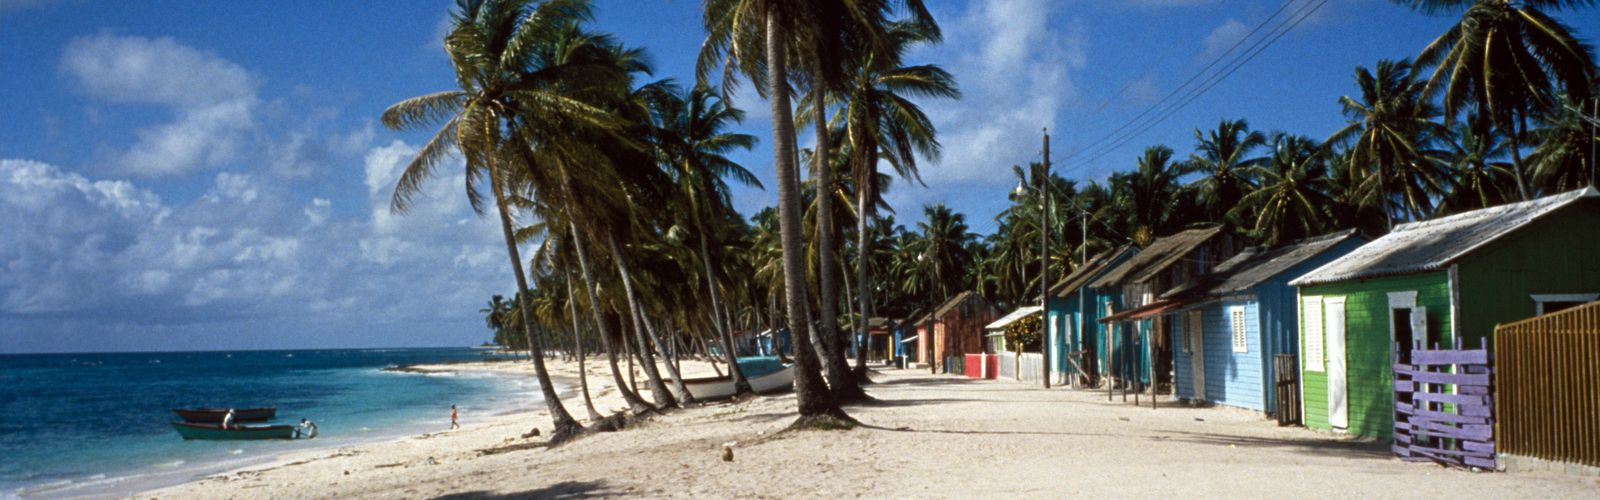 Colorful houses line the beach on Saona Island, Parque Nacional del Este, Dominican Republic.